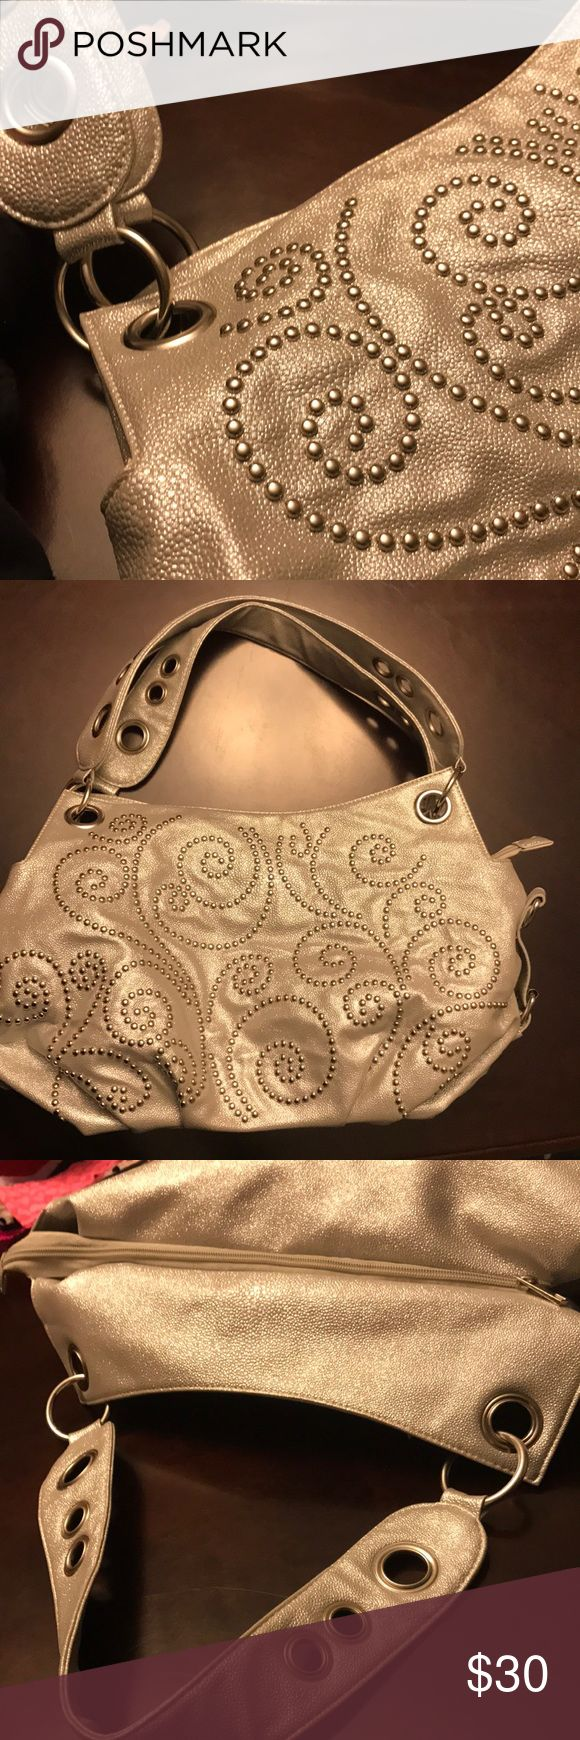 👛The Buckle metallic silver purse silver beading Youmi K The Buckle silver purse. Front of the purse has intricate silver beading over metallic silver. It has 2 shoulder straps which attach through 2 holes on each side. They are non-adjustable.  The back of the purse is a zippered pouch and a small pocket for a cell phone. The purse zippers closed & once opened there are 3 compartments/pockets. 1 side has a zippered pocket and the other has two smaller pockets. There are lots of pictures…